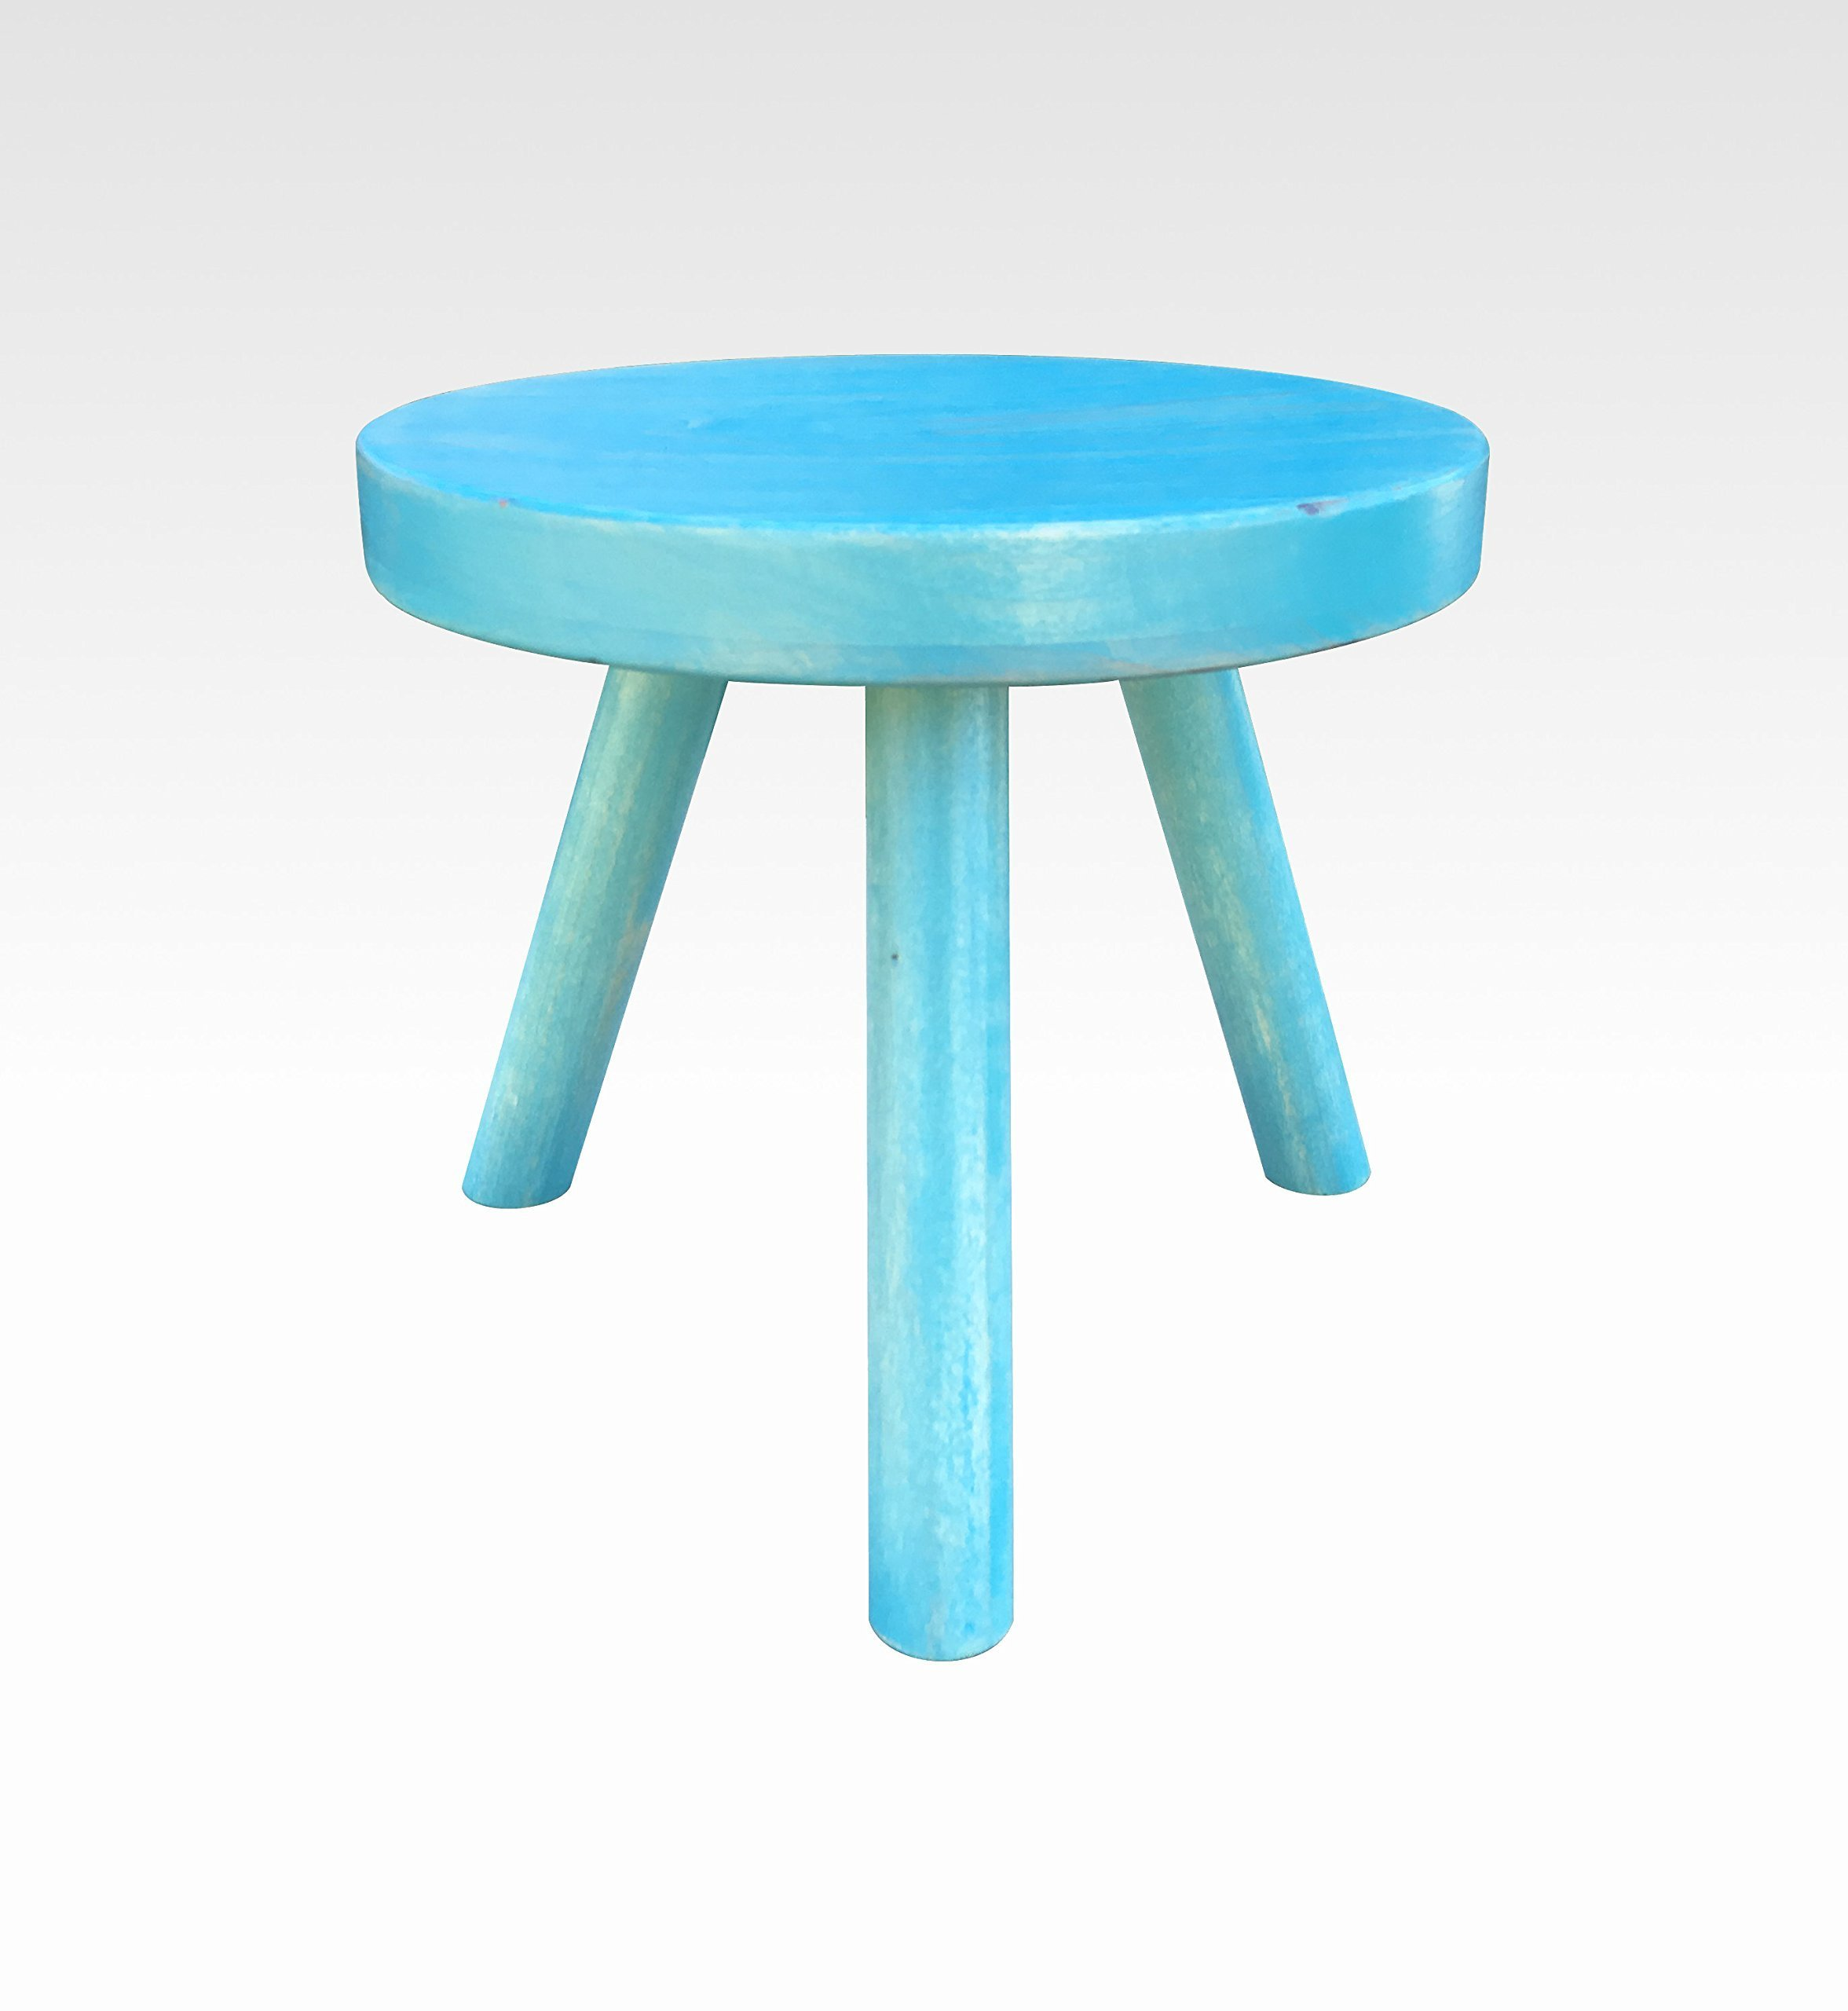 Small Wood Three Legged Stool, Modern Plant Stand in Vintage Aqua by Candlewood Furniture, Wooden, Tea Table, Kids Chair, Decorative